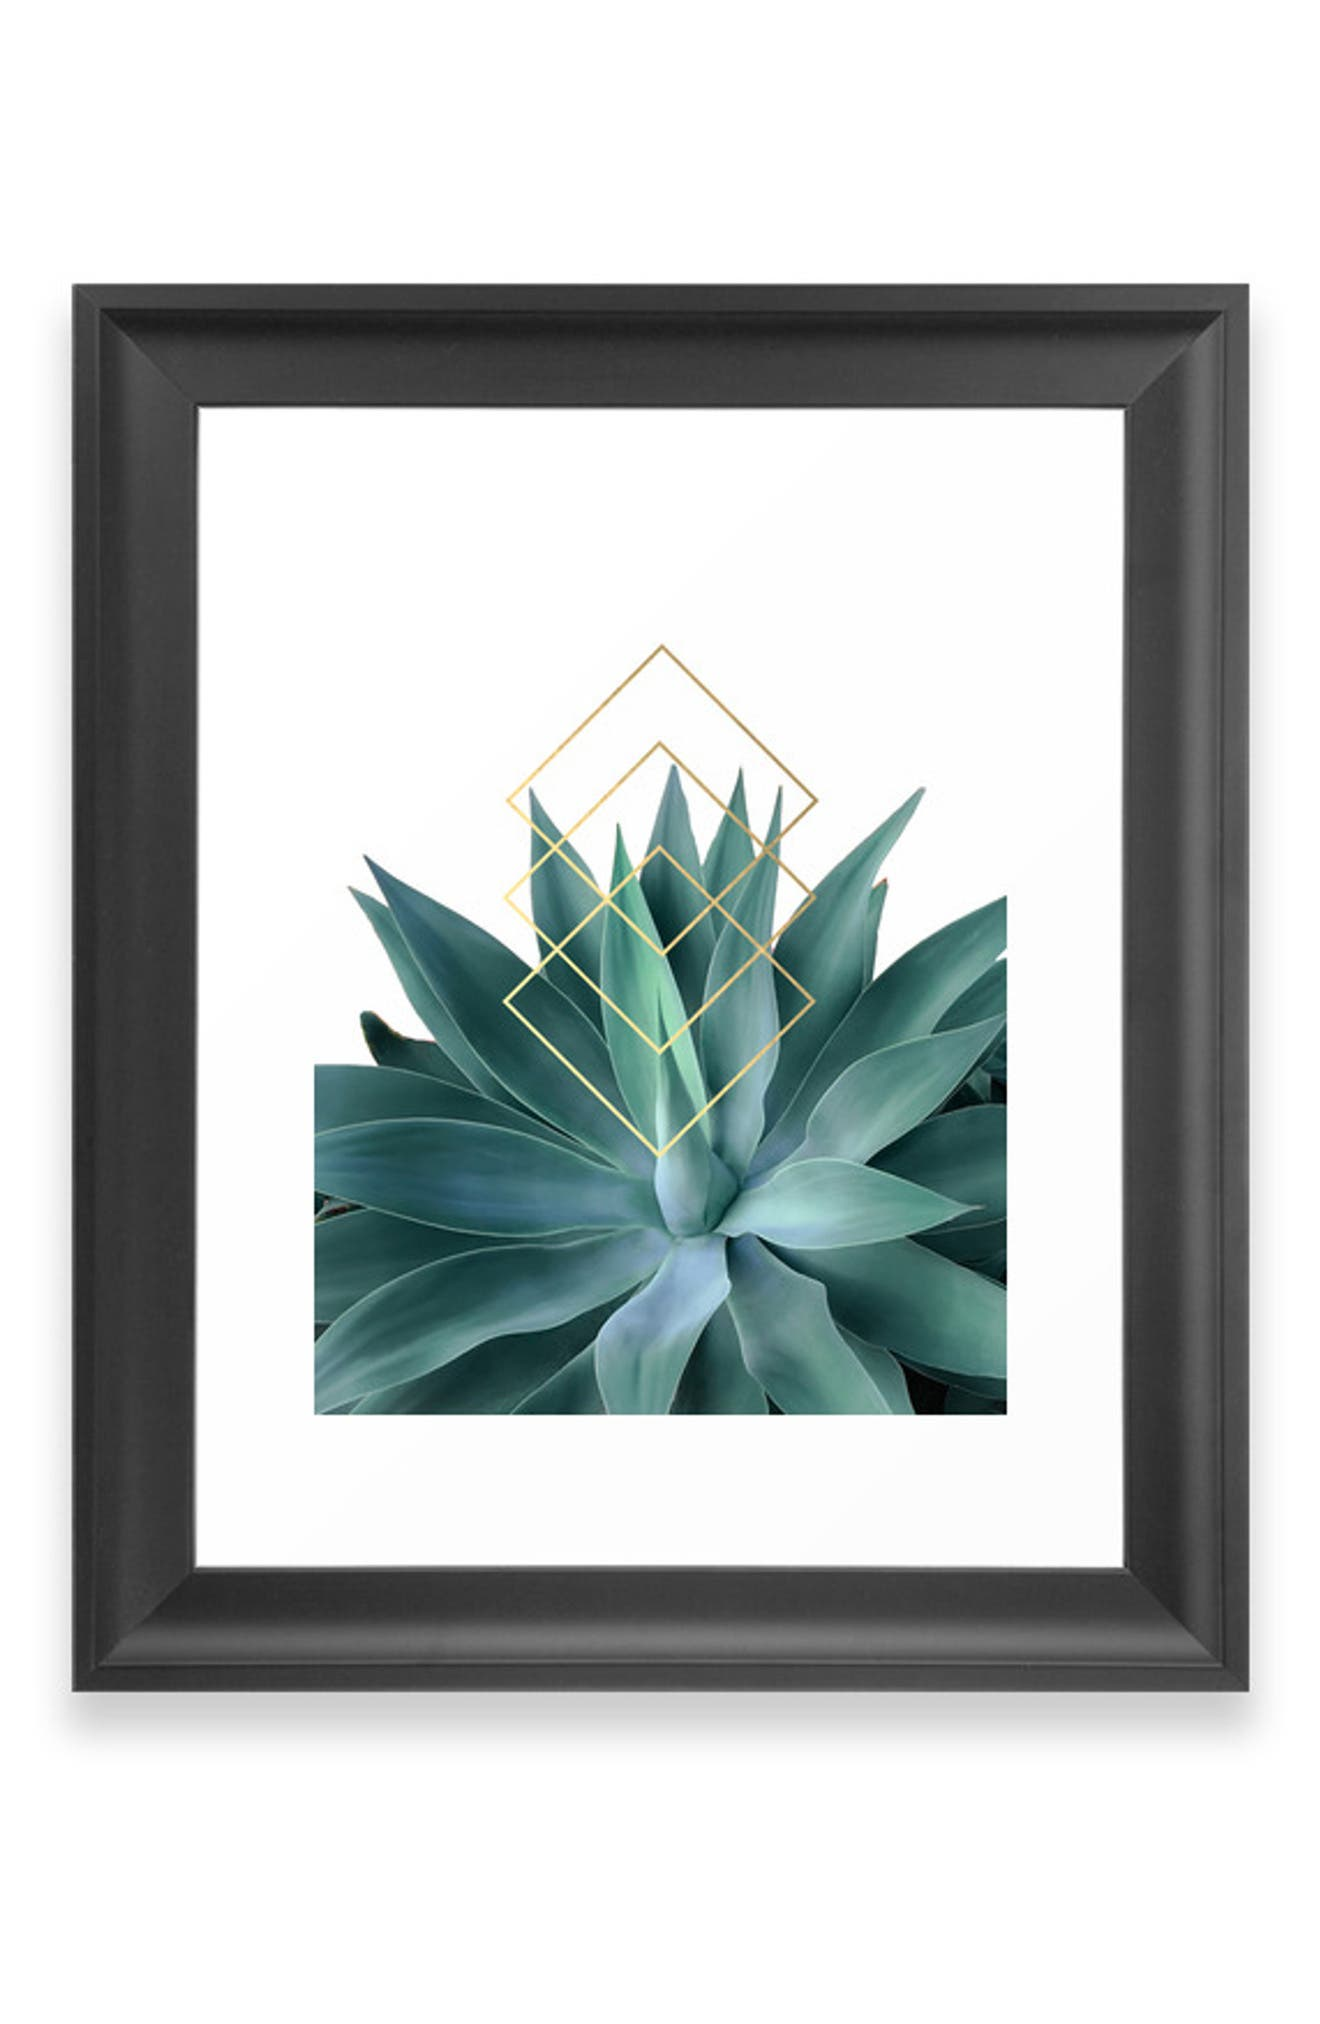 Geometric shapes and natural style merge on a contemporary matte-finish art print available on its own or in a ready-to-hang frame. Style Name: Deny Designs Agave Geometrics Art Print. Style Number: 5868606. Available in stores.